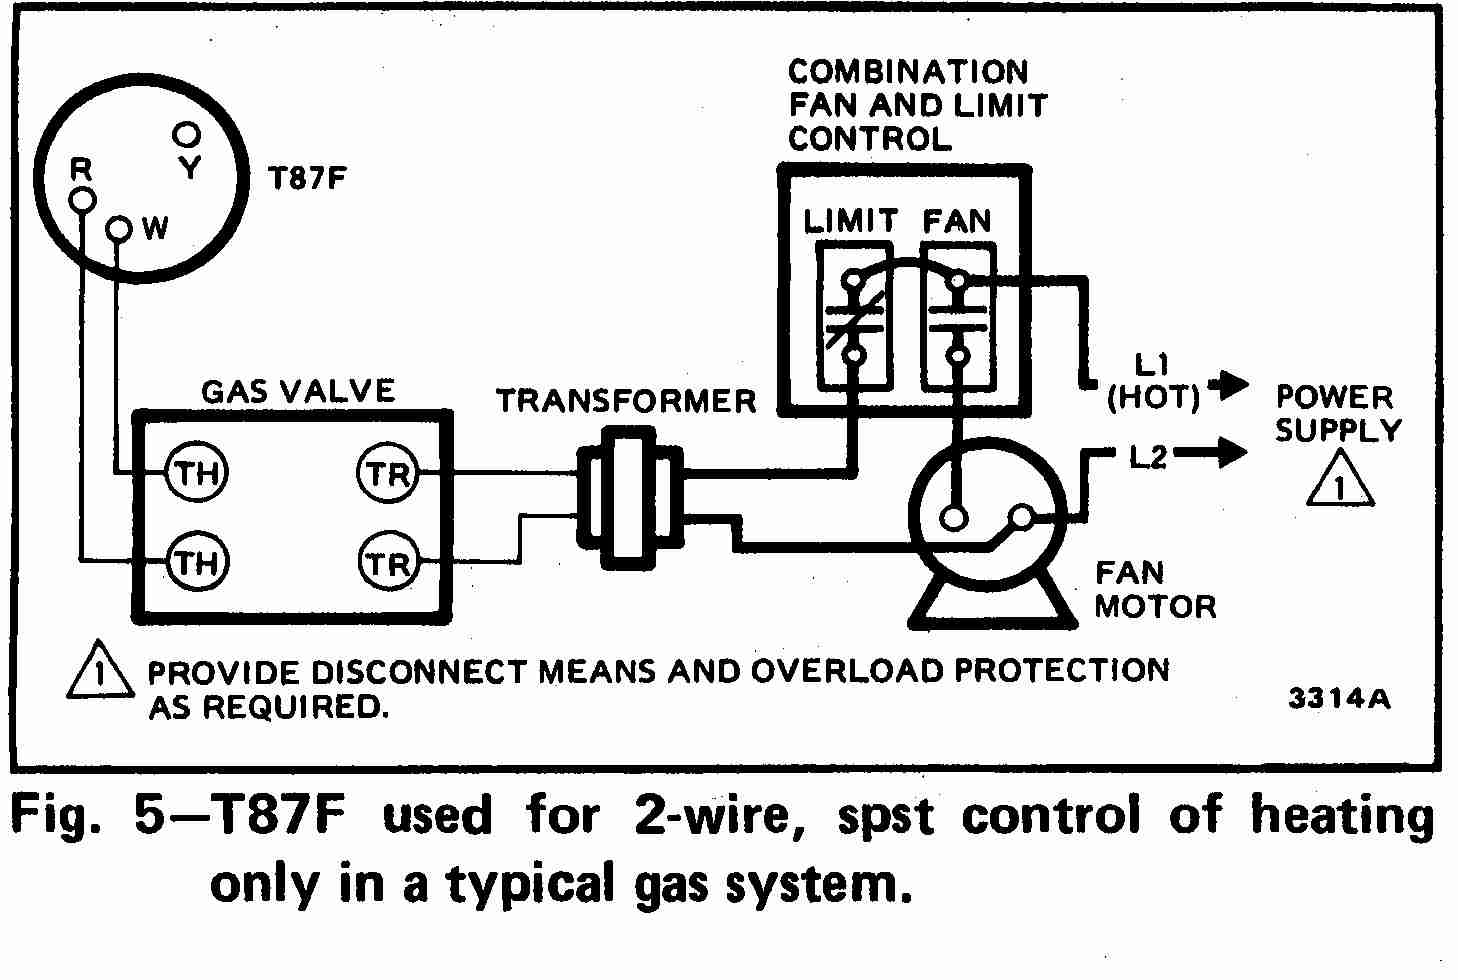 TT_T87F_0002_2Wg_DJF room thermostat wiring diagrams for hvac systems hvac wiring diagrams at gsmportal.co